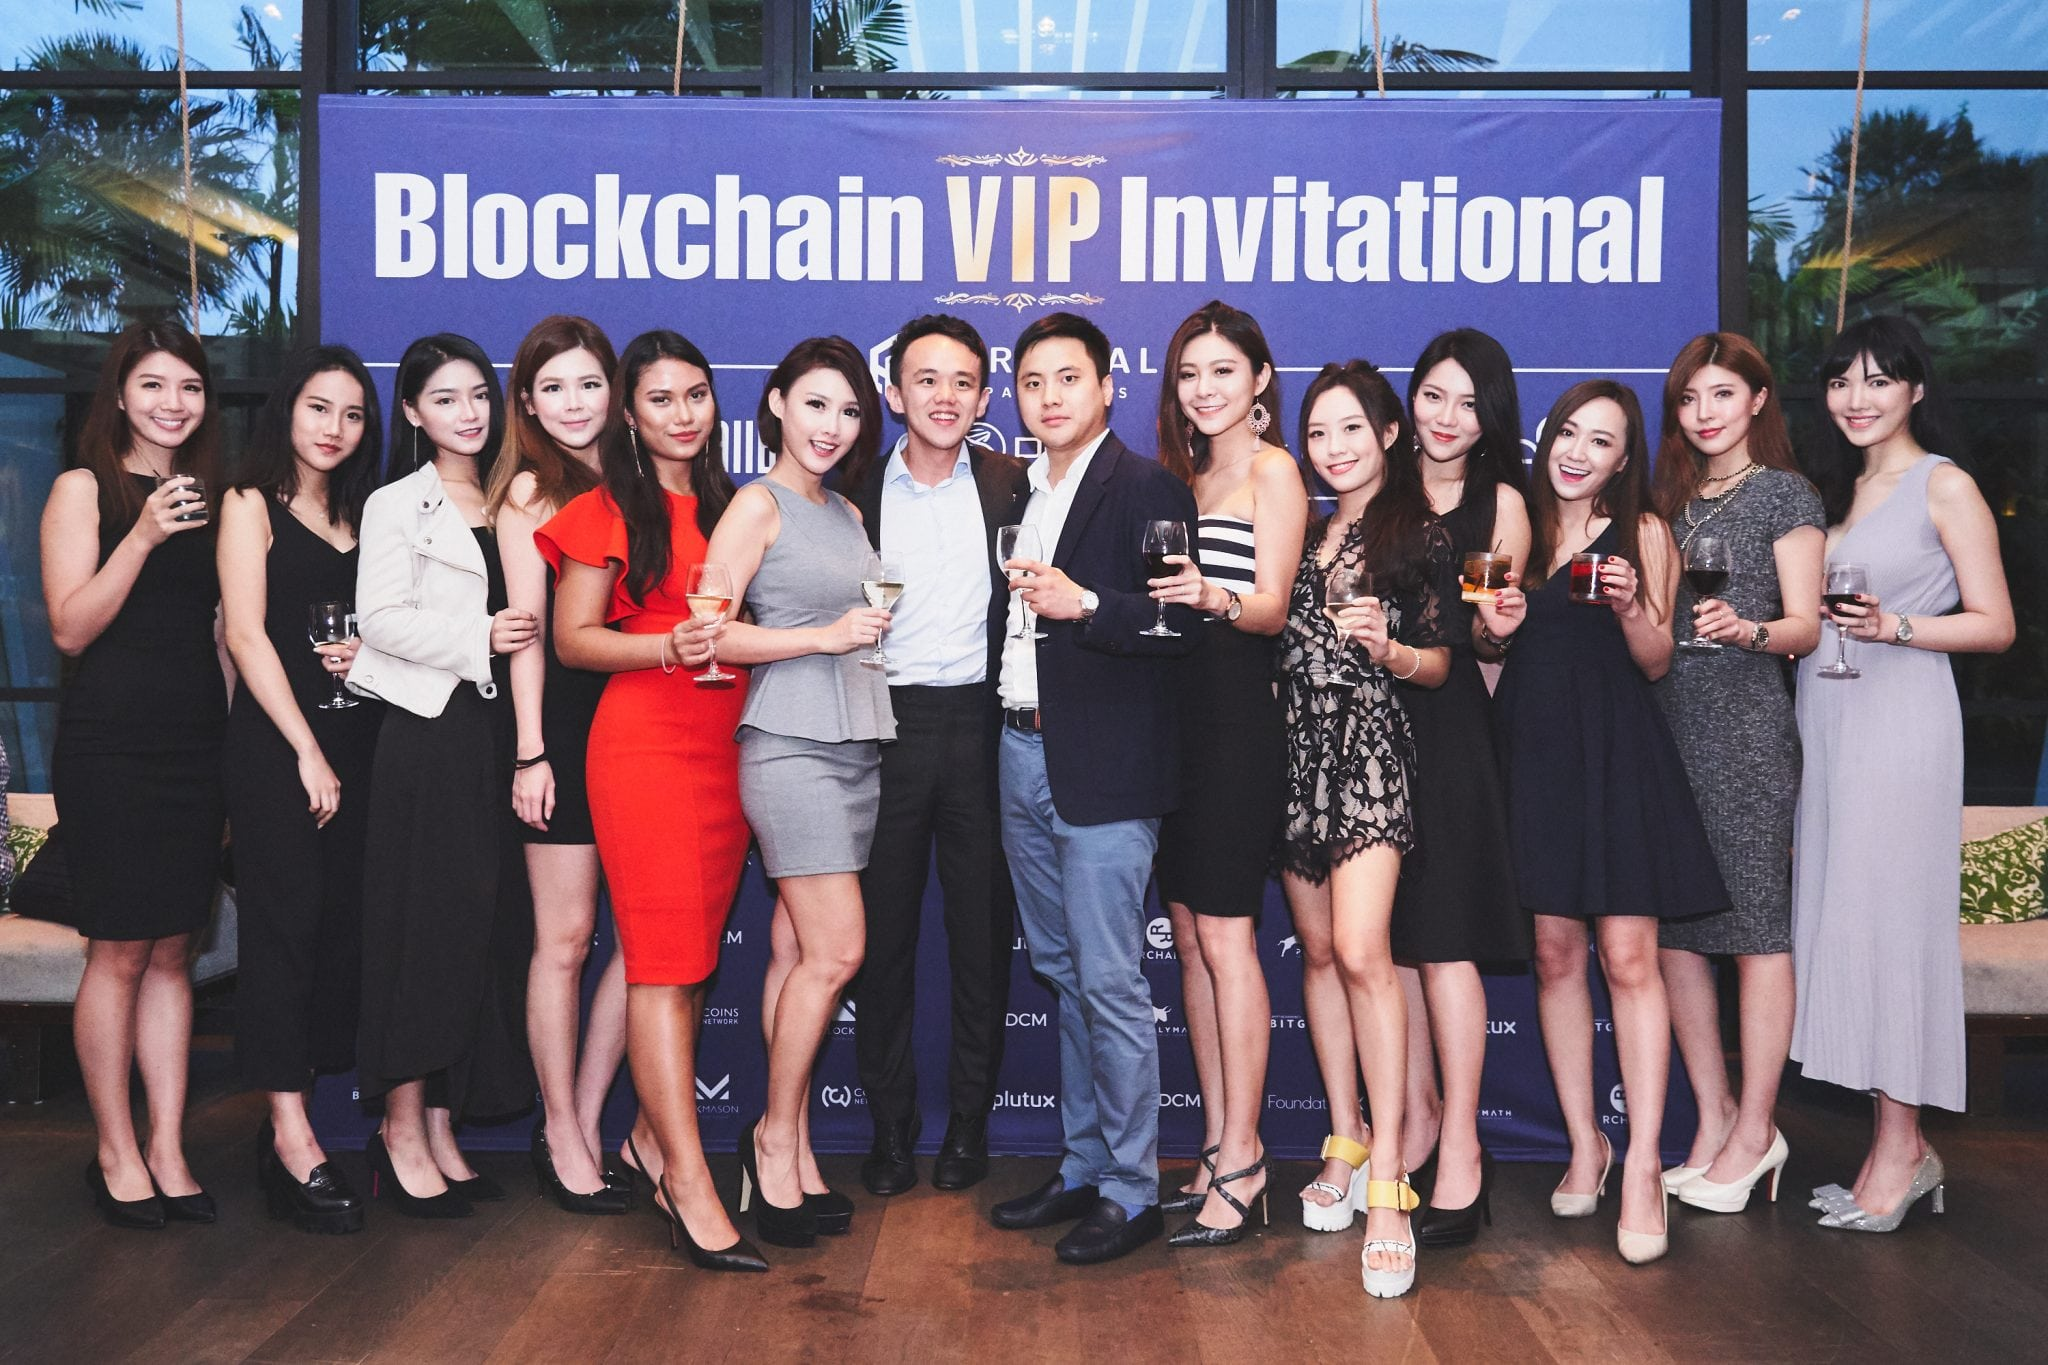 20180920 Blockchain VIP Invitational 043 - Orichal Partners Completes Successful Event at Consensus Singapore 2018